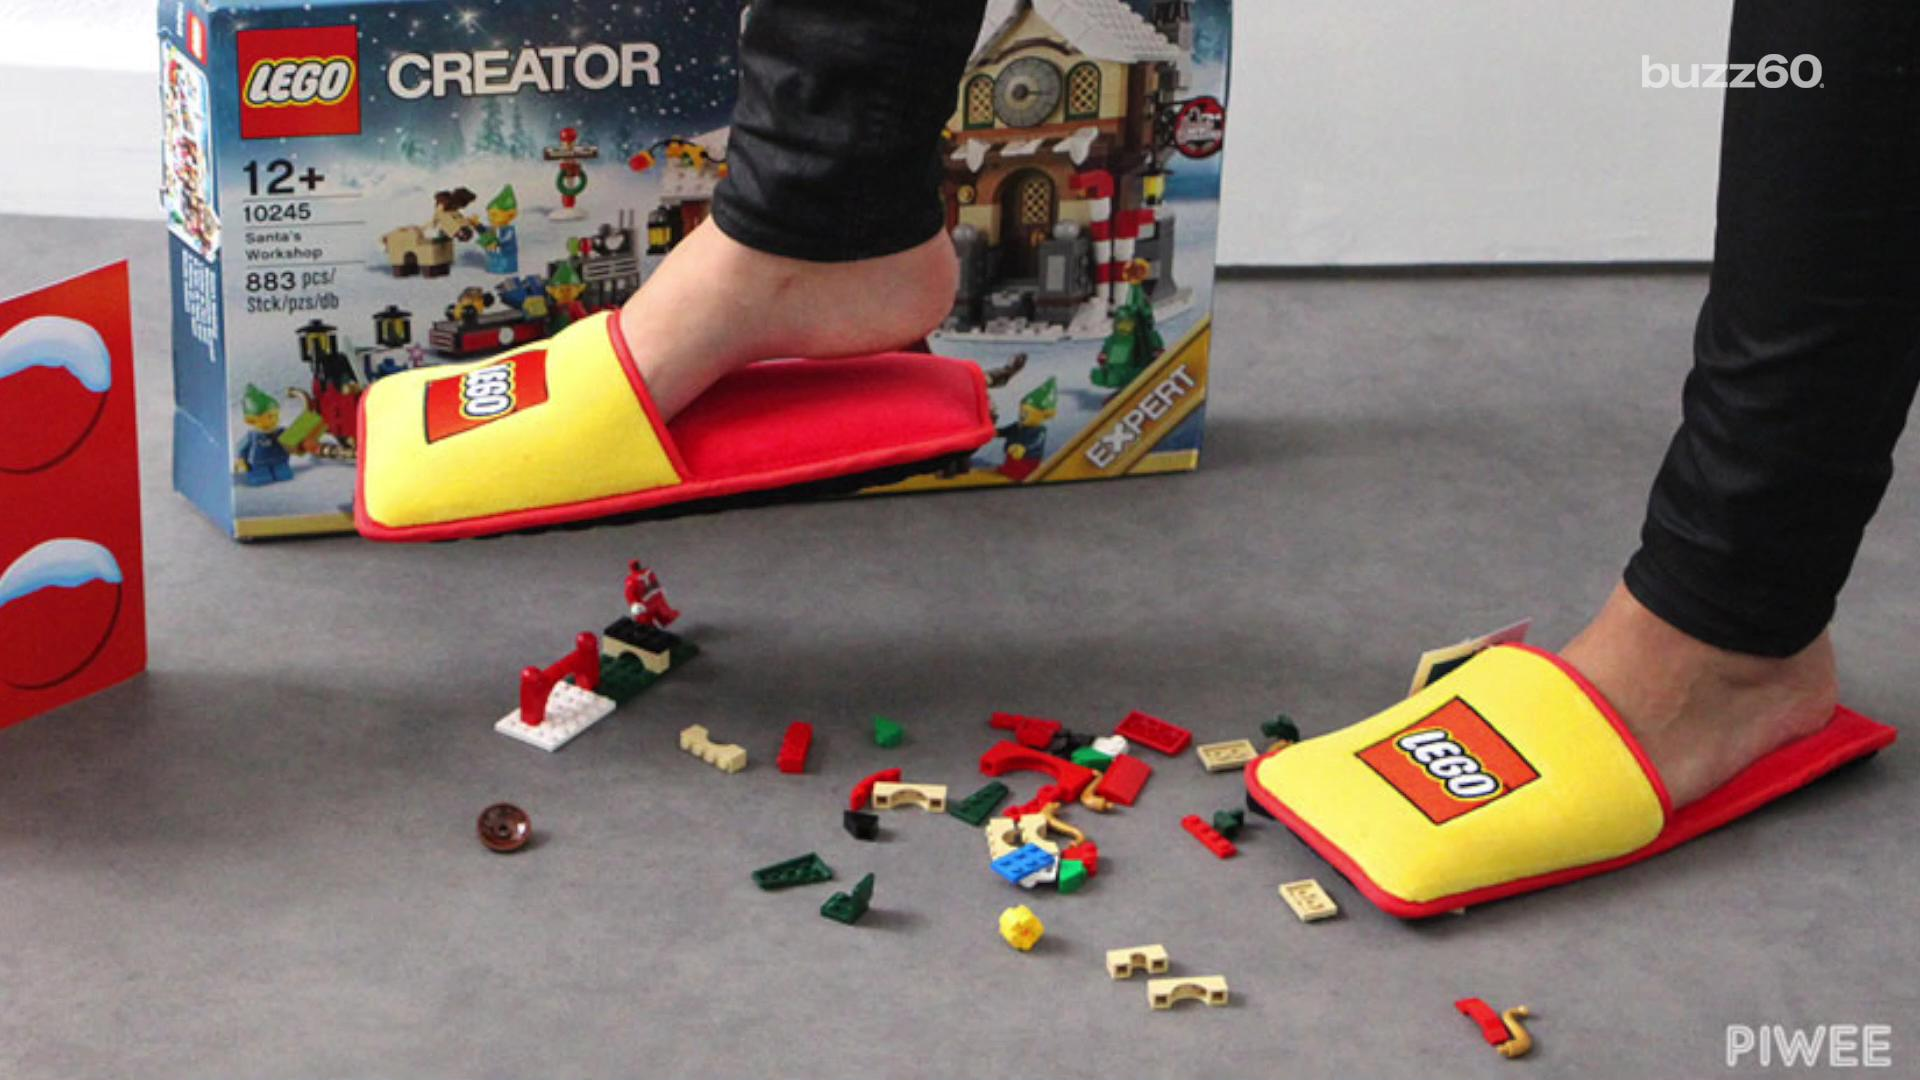 Lego Finally Makes Slippers To Protect Parents Feet